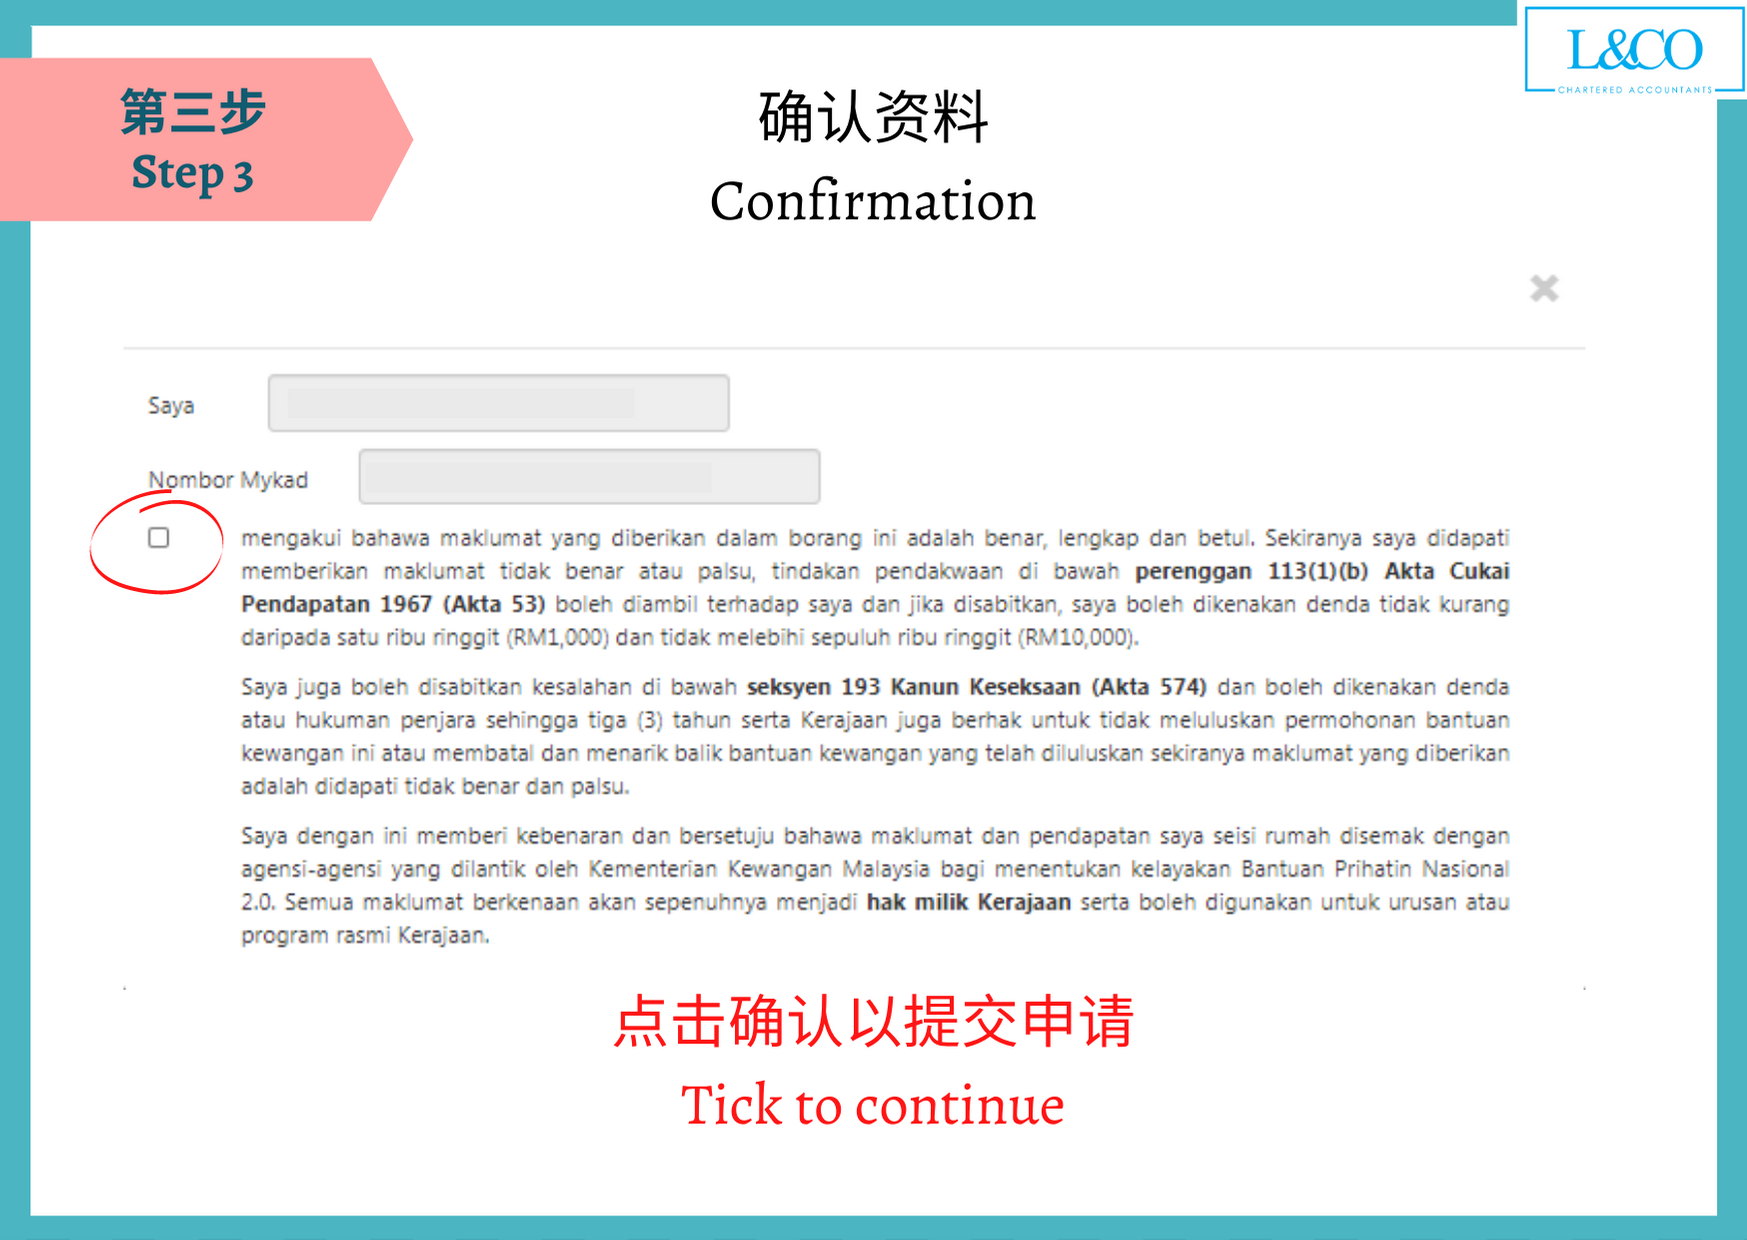 Tick to confirm and continue